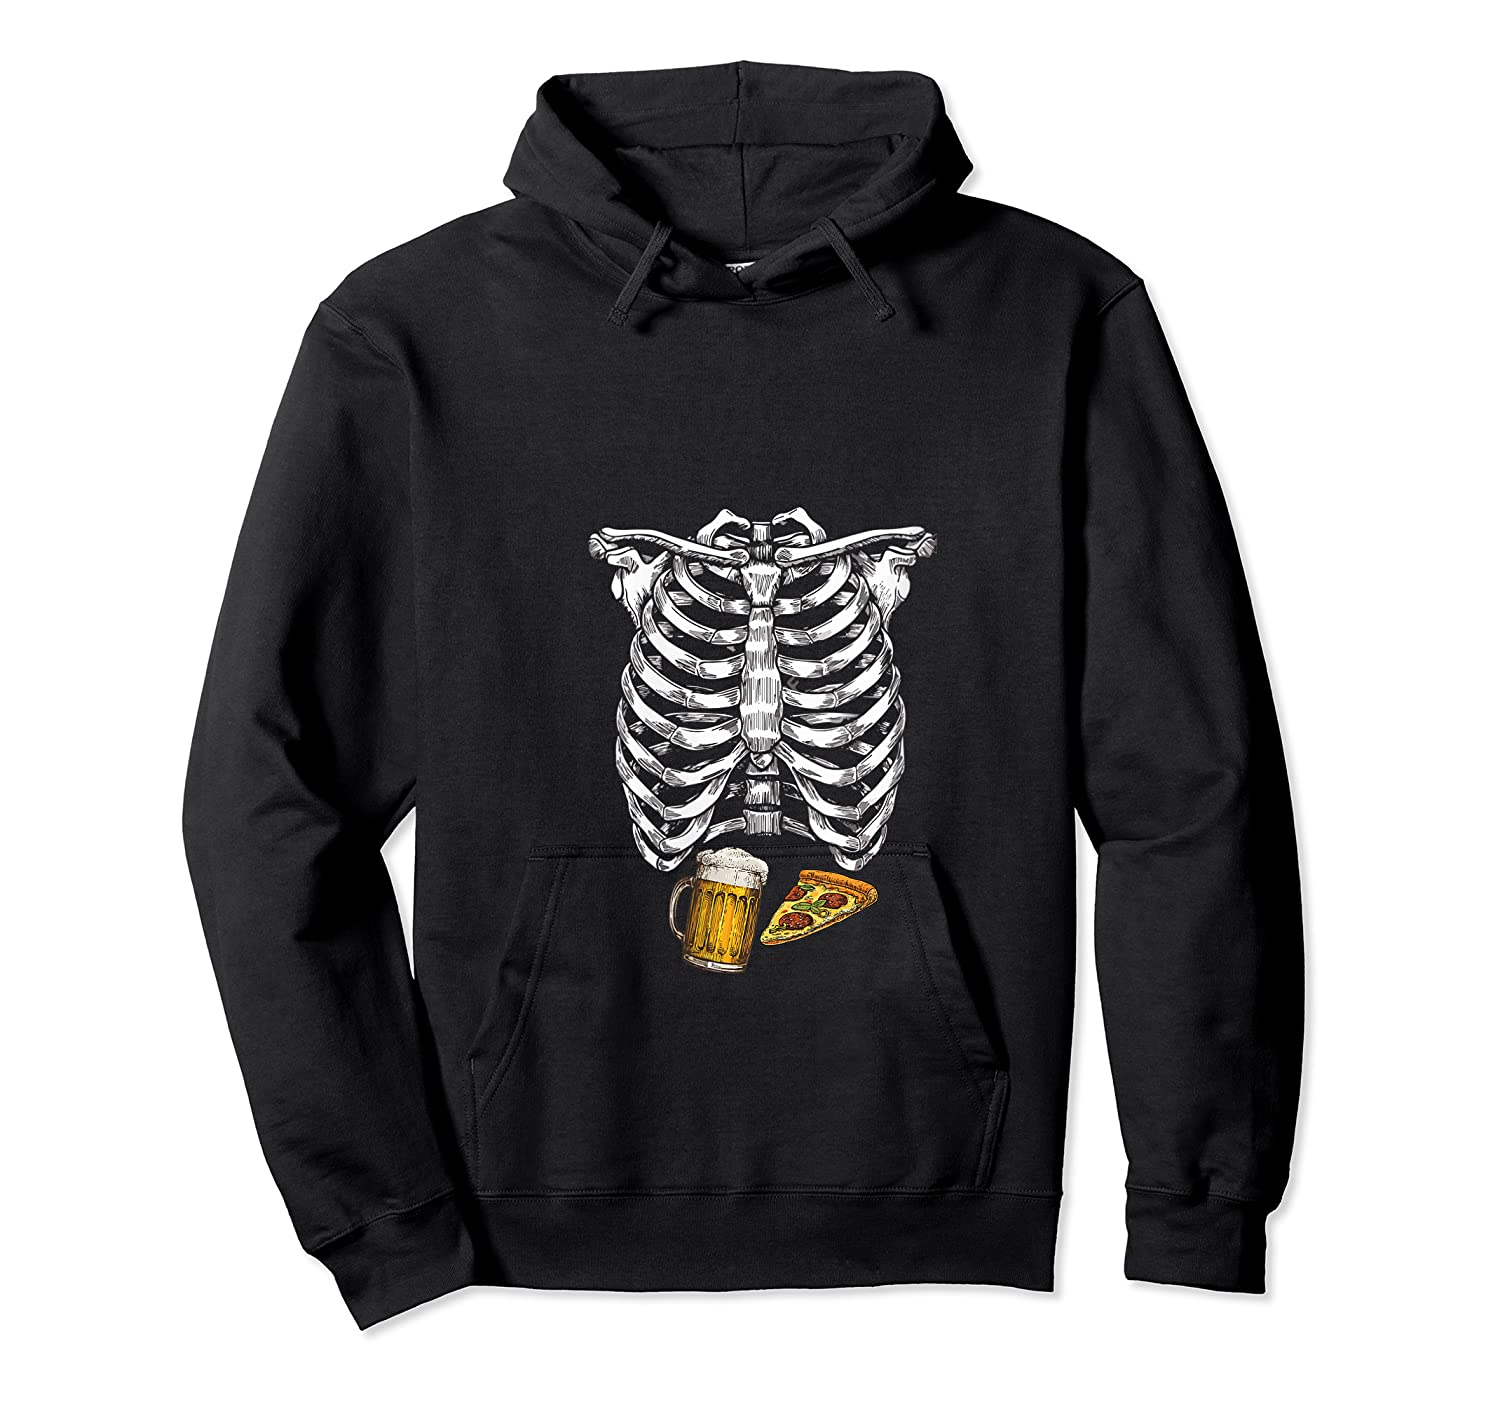 Funny Halloween Skeleton Pregnancy Pizza Beer Xray Apparel Shirts Unisex Pullover Hoodie